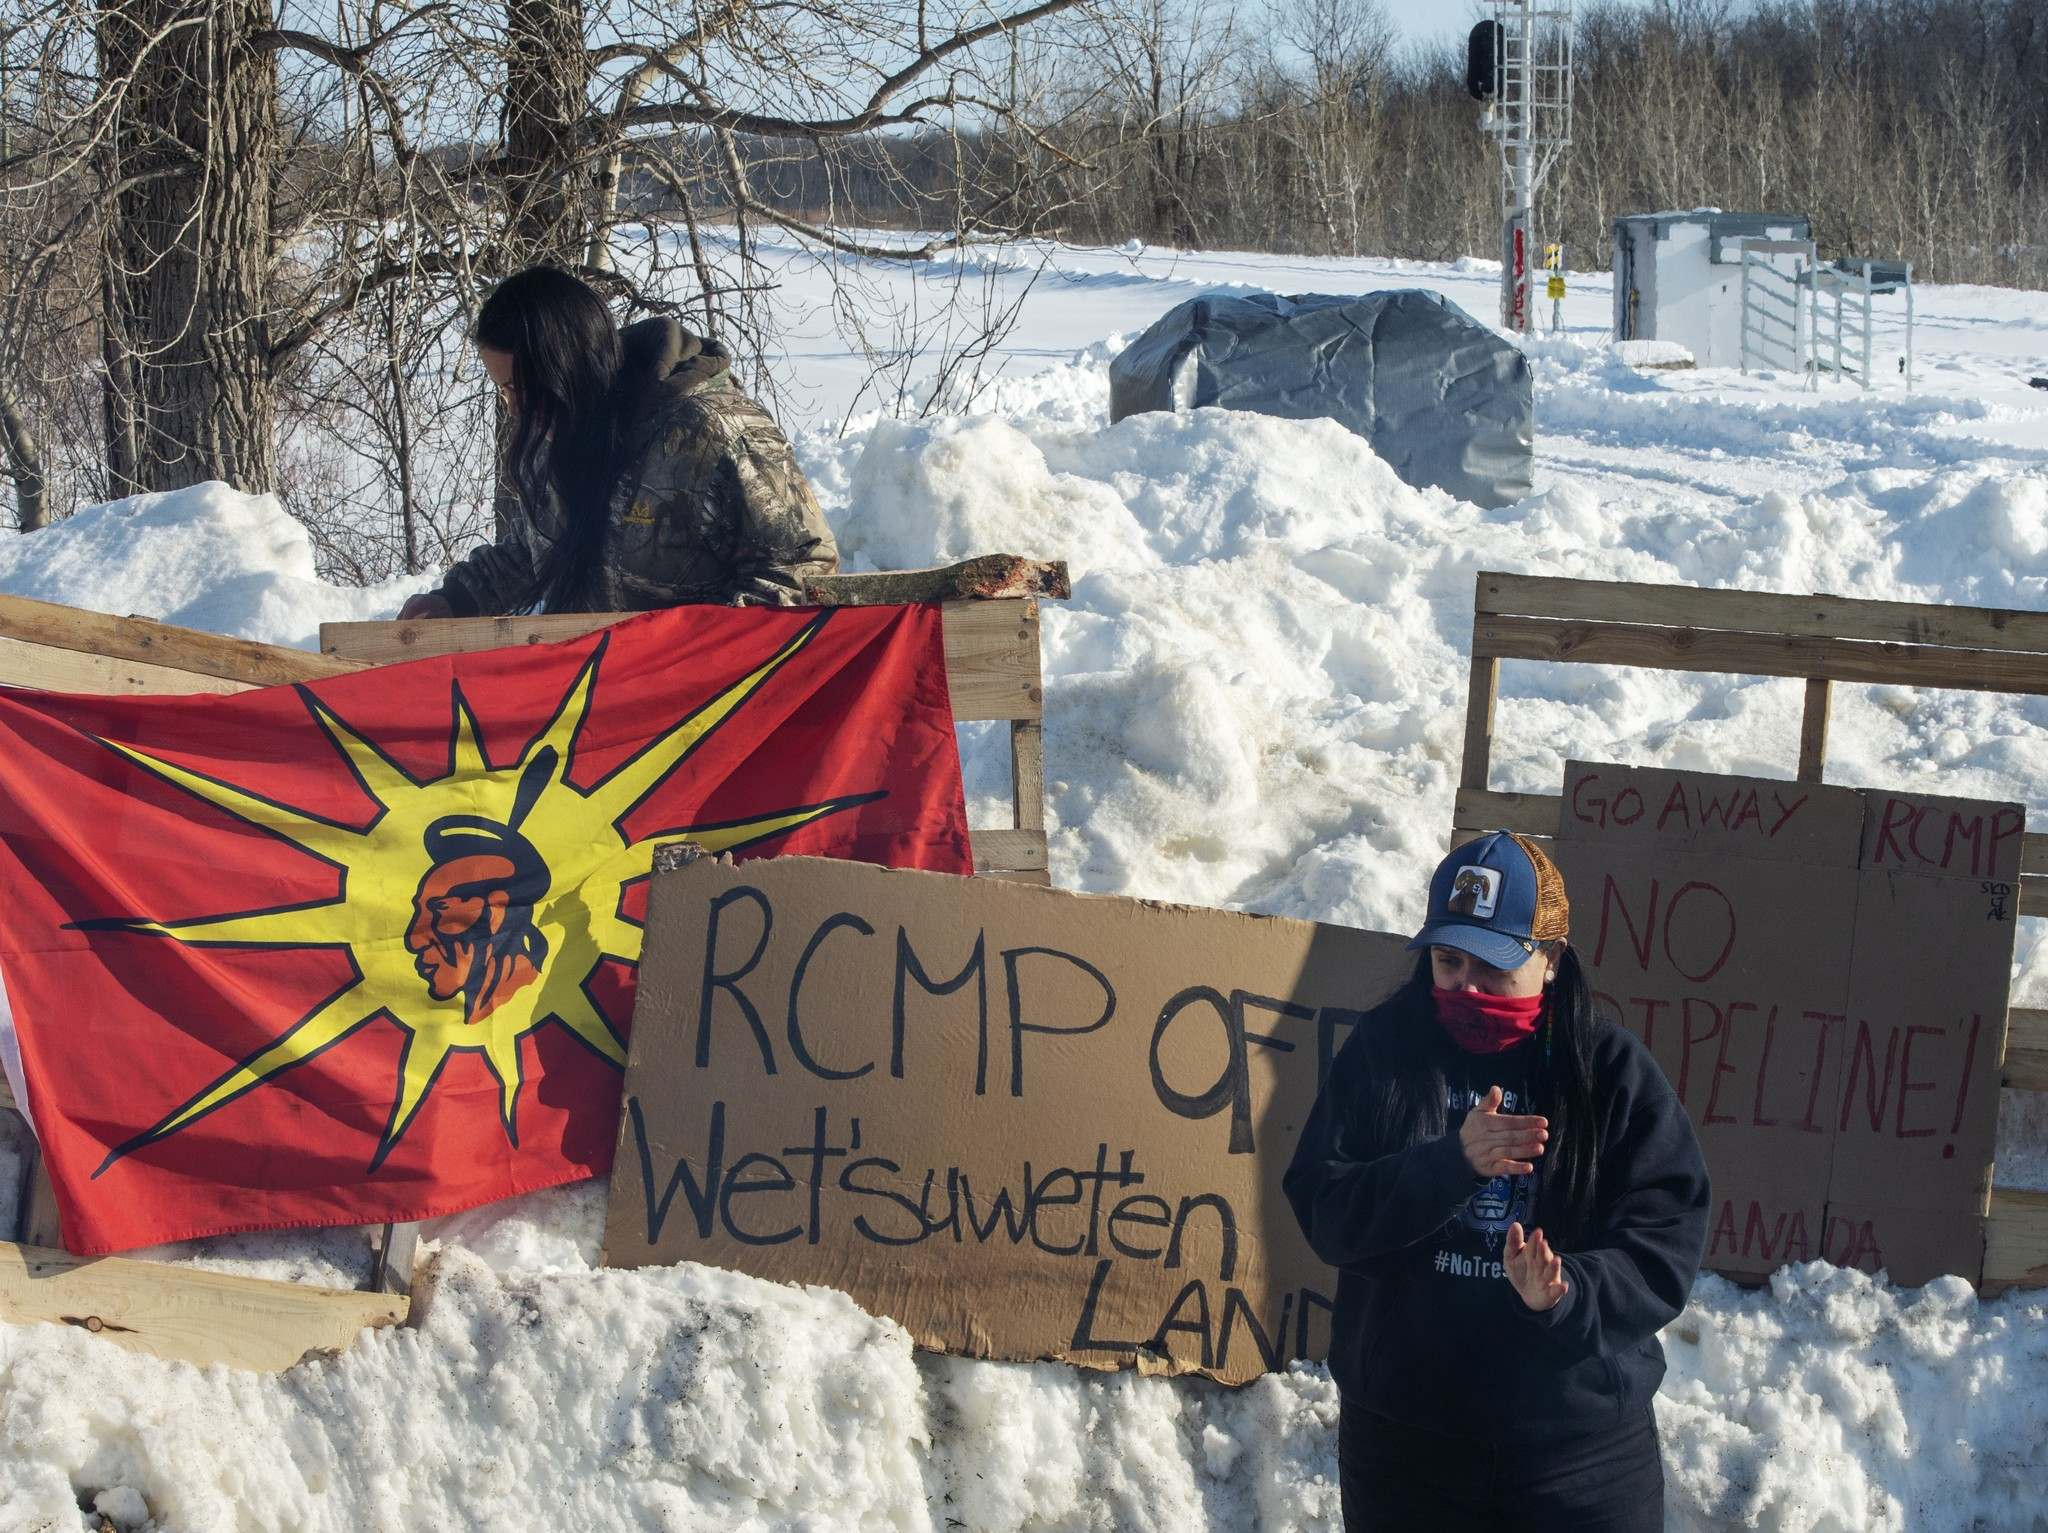 Members of the Mohawk community man a blockade of the commuter rail line in Kahnawake, Que. on Wednesday. (Ryan Remiorz / The Canadian Press)</p>